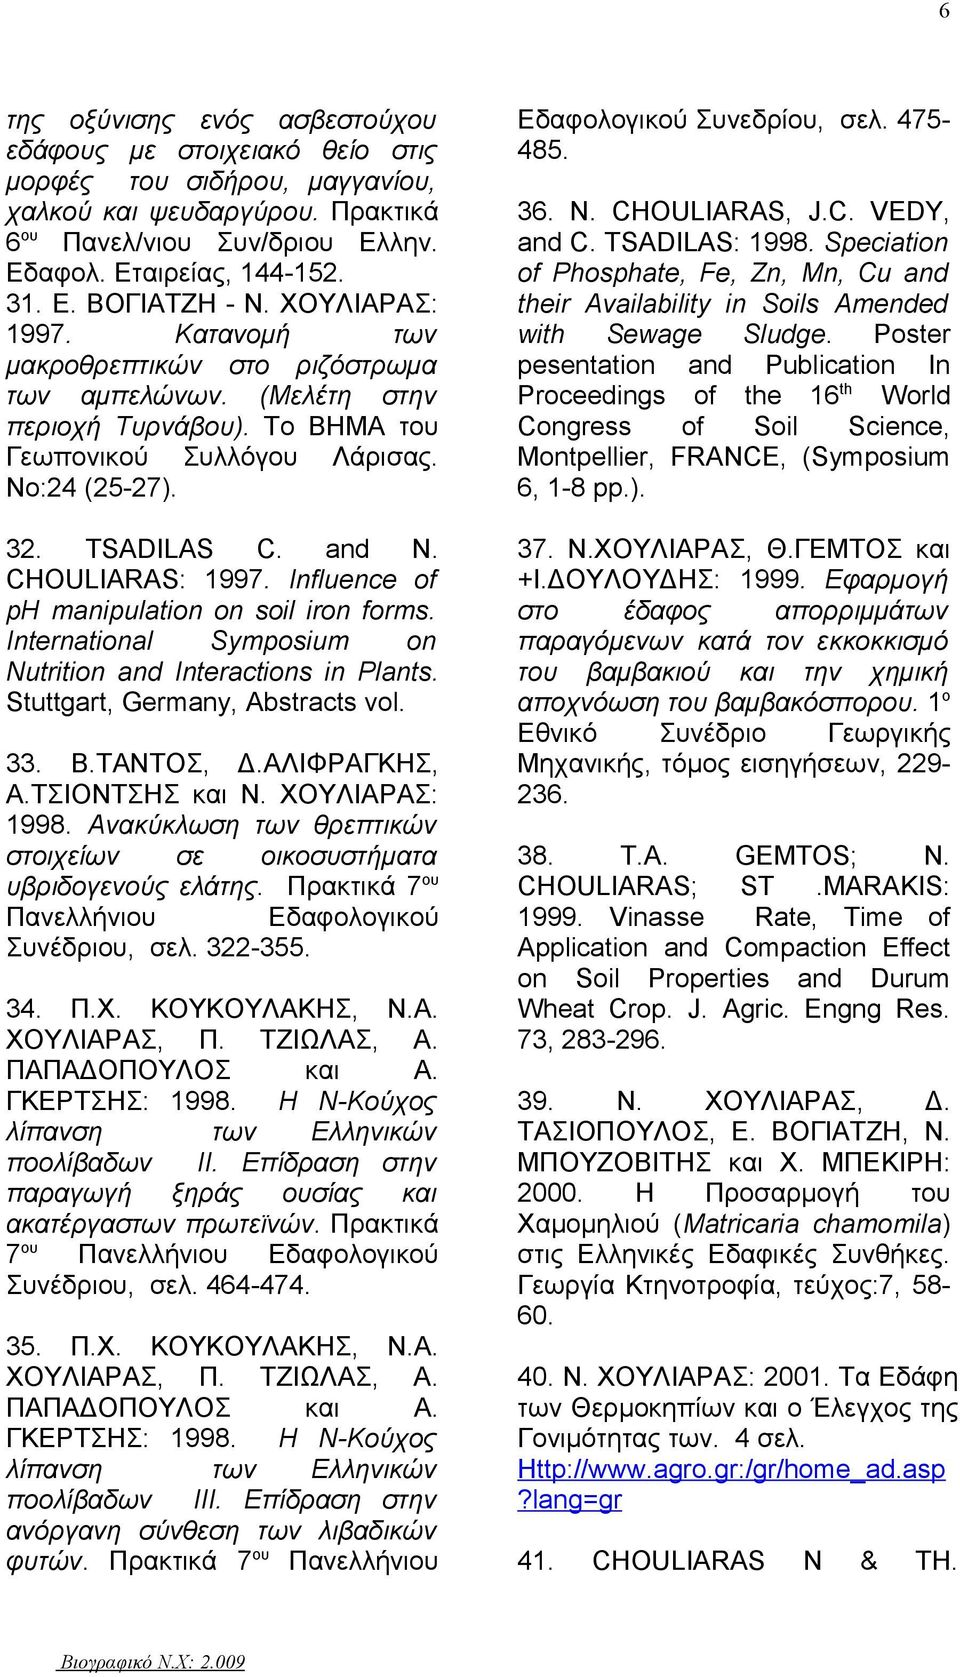 CHOULIARAS: 1997. Influence of ph manipulation on soil iron forms. International Symposium on Nutrition and Interactions in Plants. Stuttgart, Germany, Αbstracts vol. 33. Β.ΤANTOΣ, Δ.ΑΛΙΦΡΑΓΚΗΣ, Α.